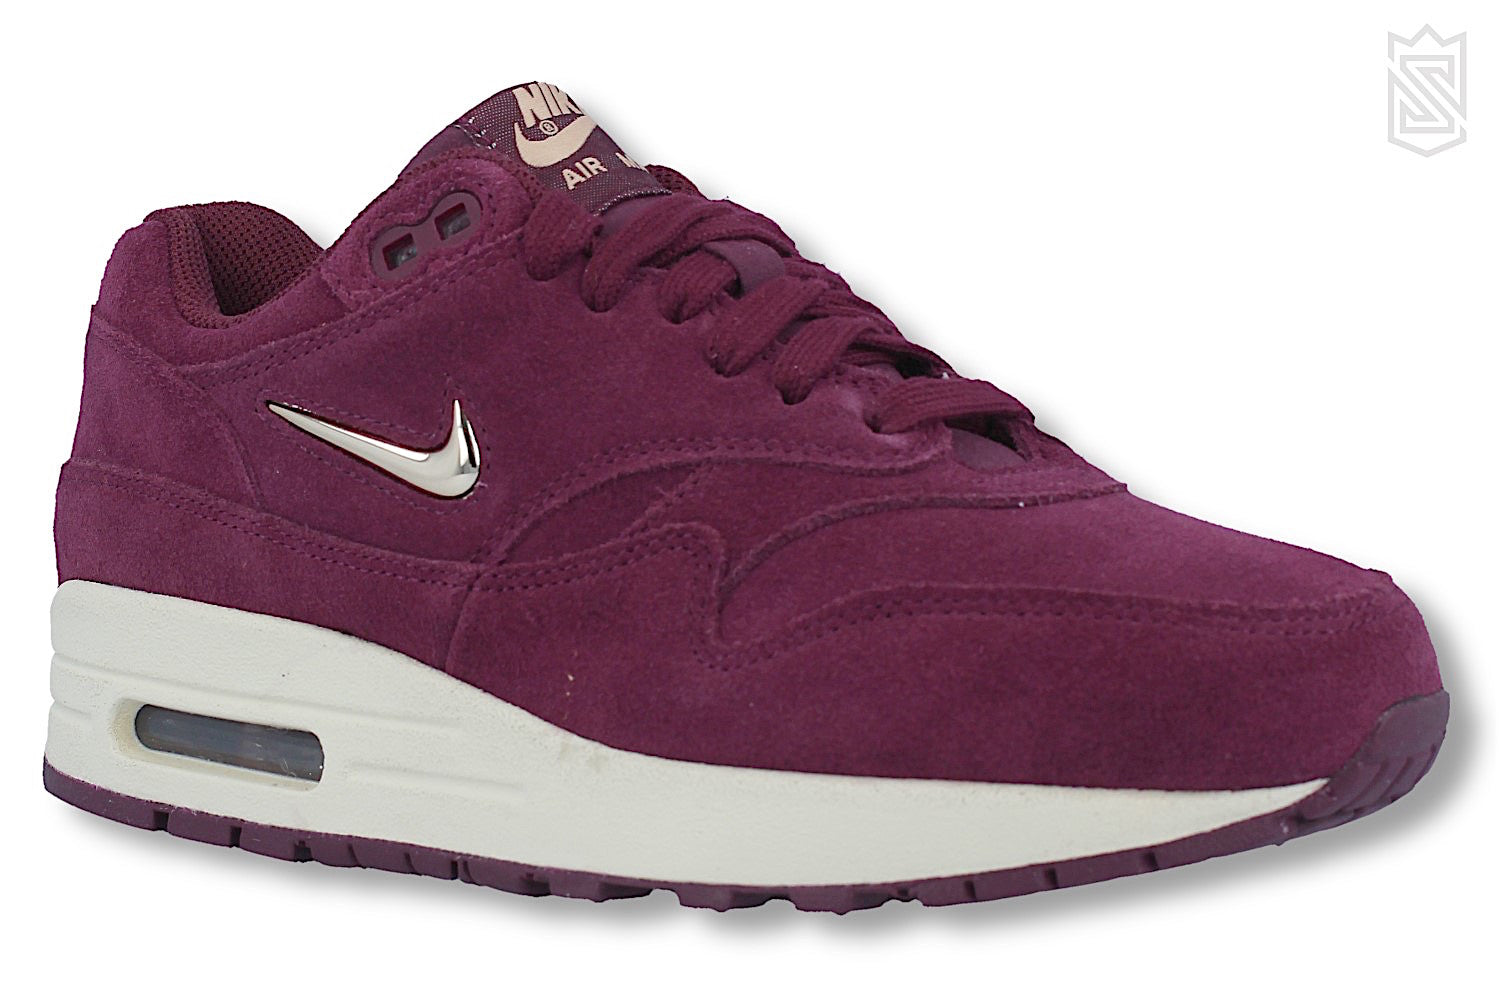 WMNS Air Max 1 Jewel - Schrittmacher Shop